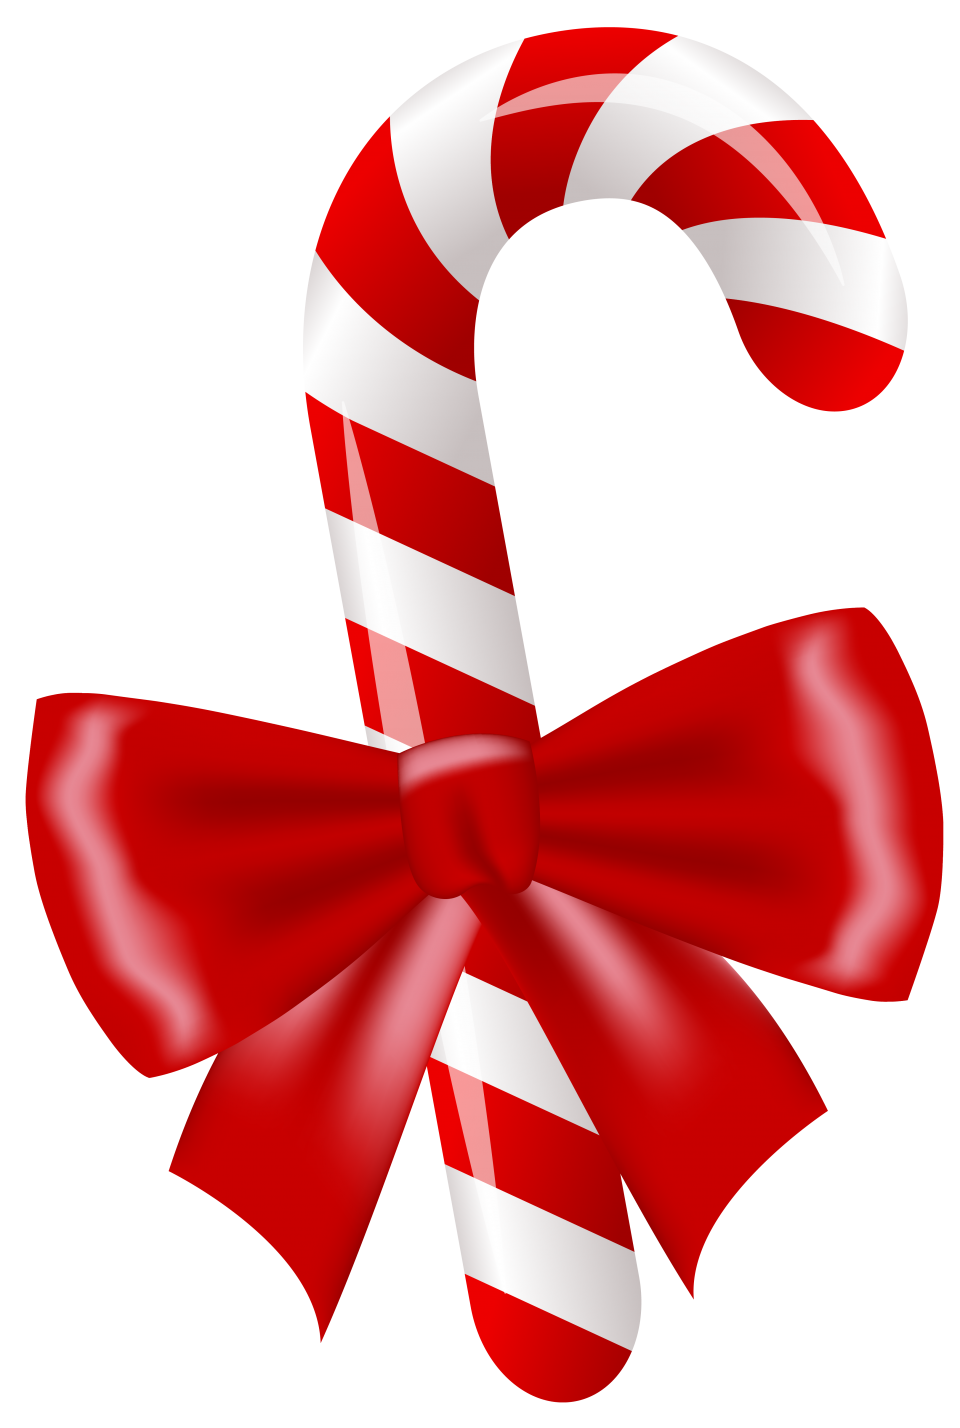 Christmas Candy Stick with Bow PNG Image